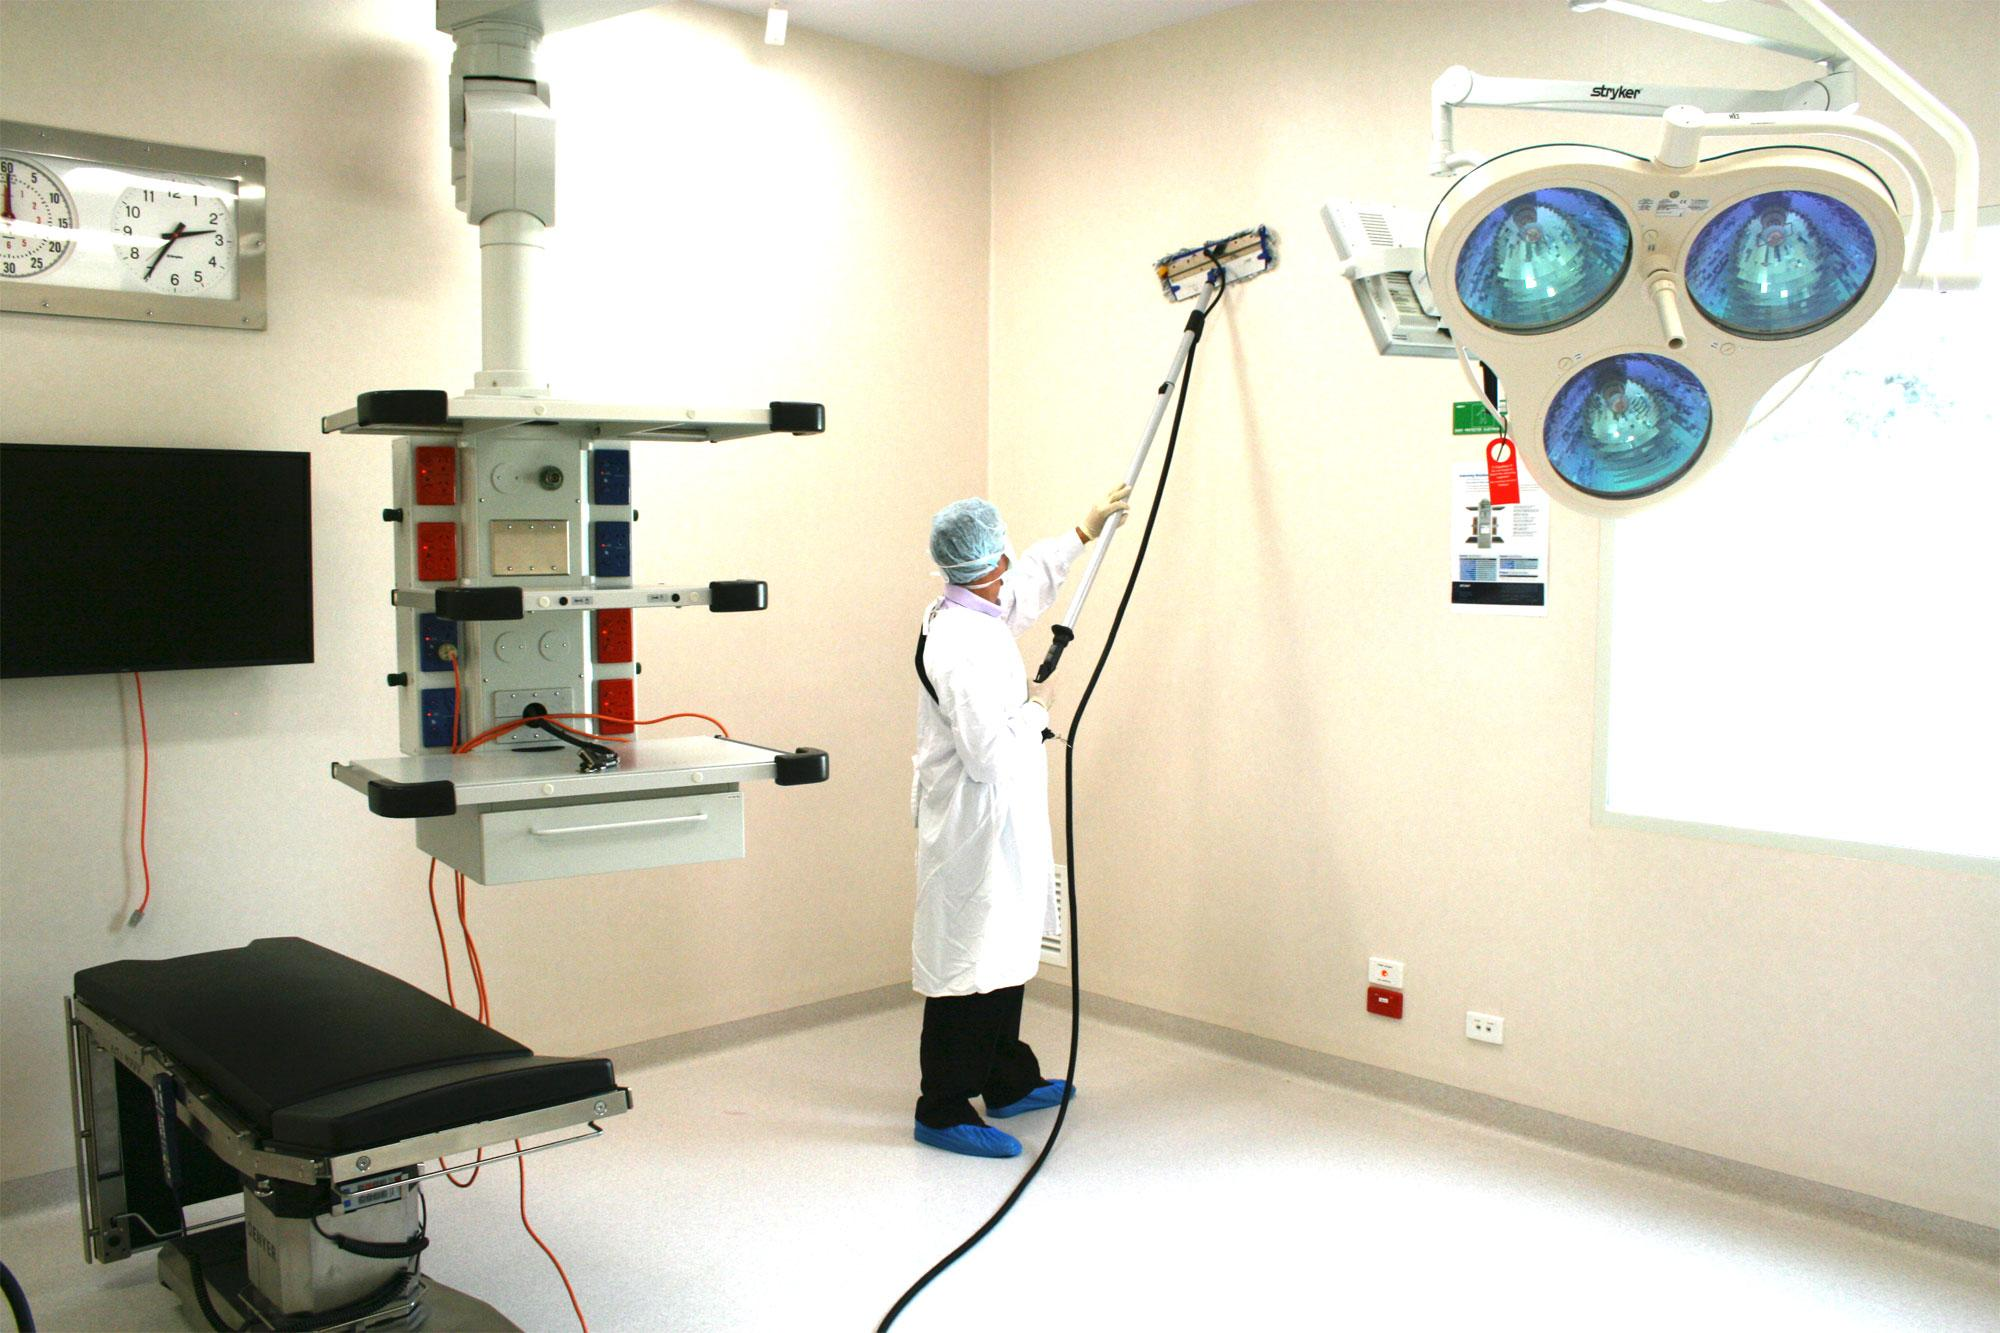 Outbreak Cleaning in Healthcare walls and surfaces